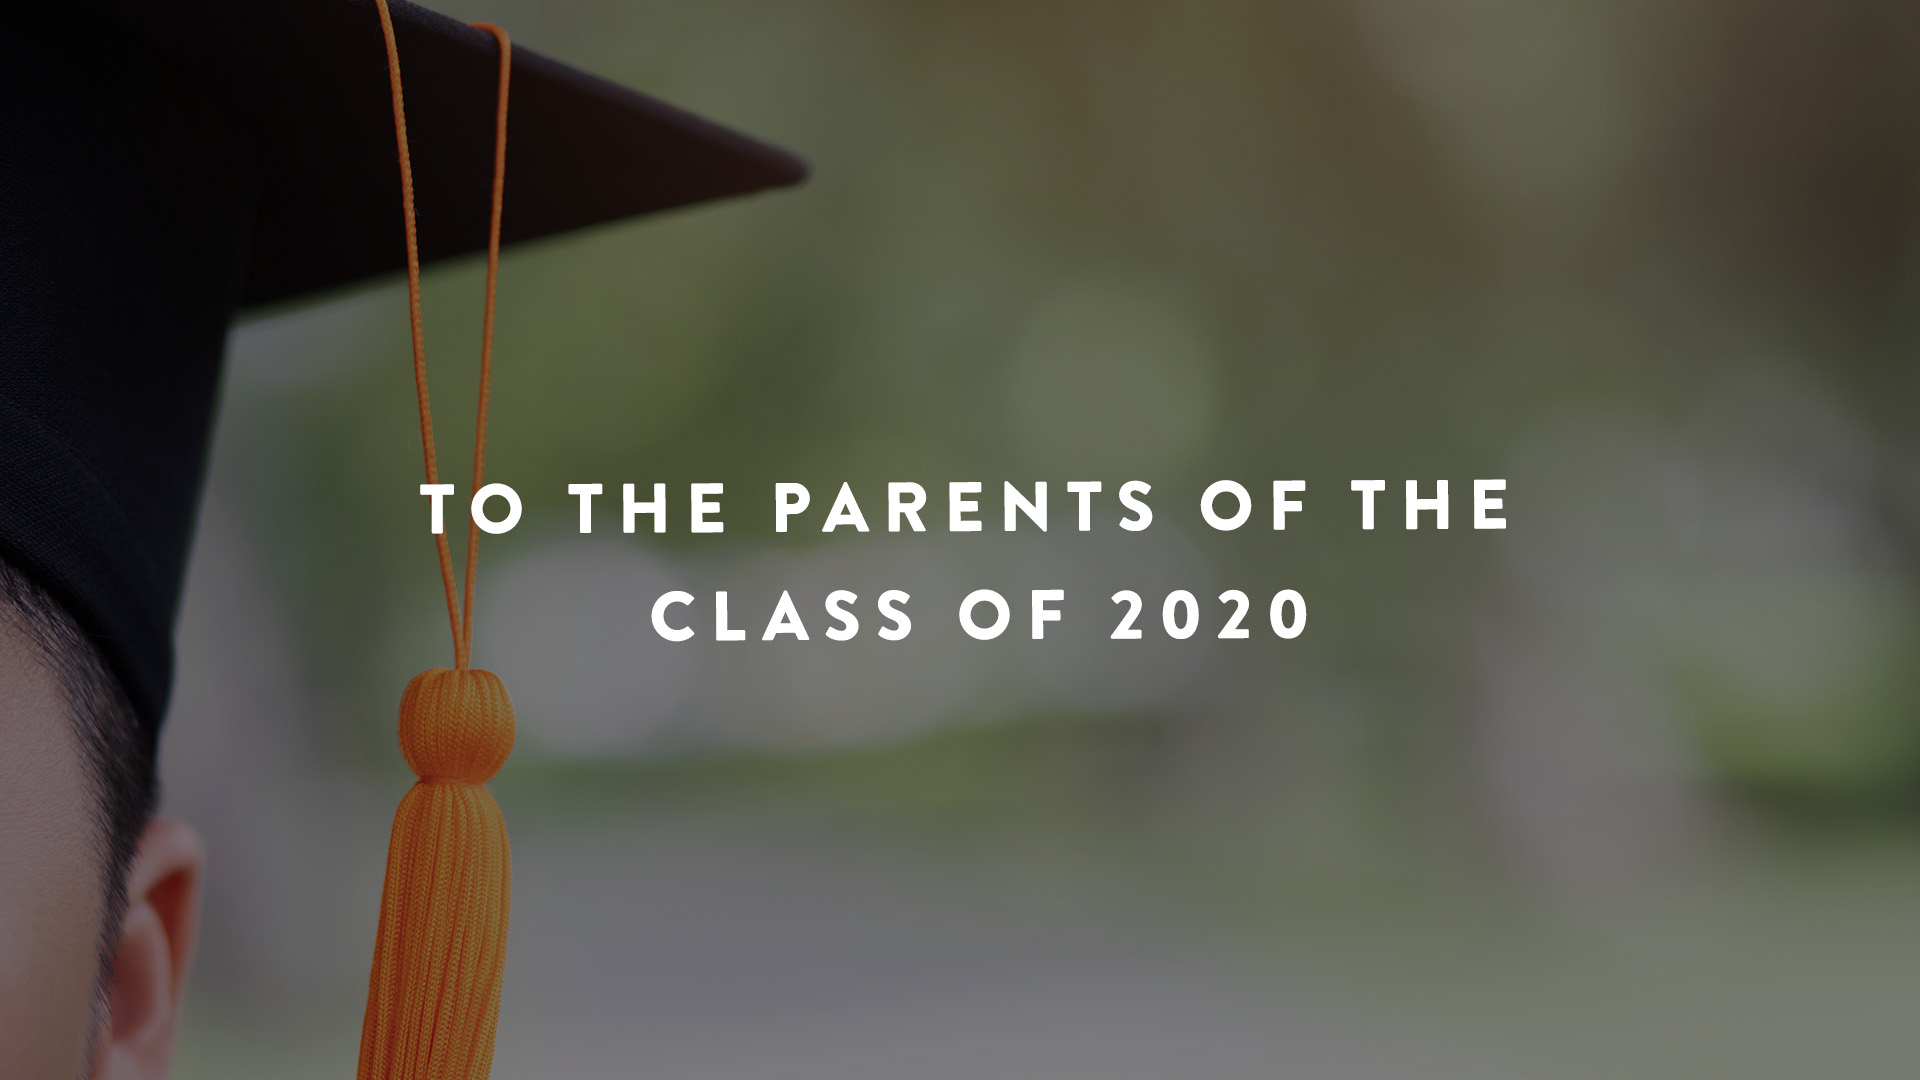 To the Parents of the Class of 2020 | Parent Cue Blog